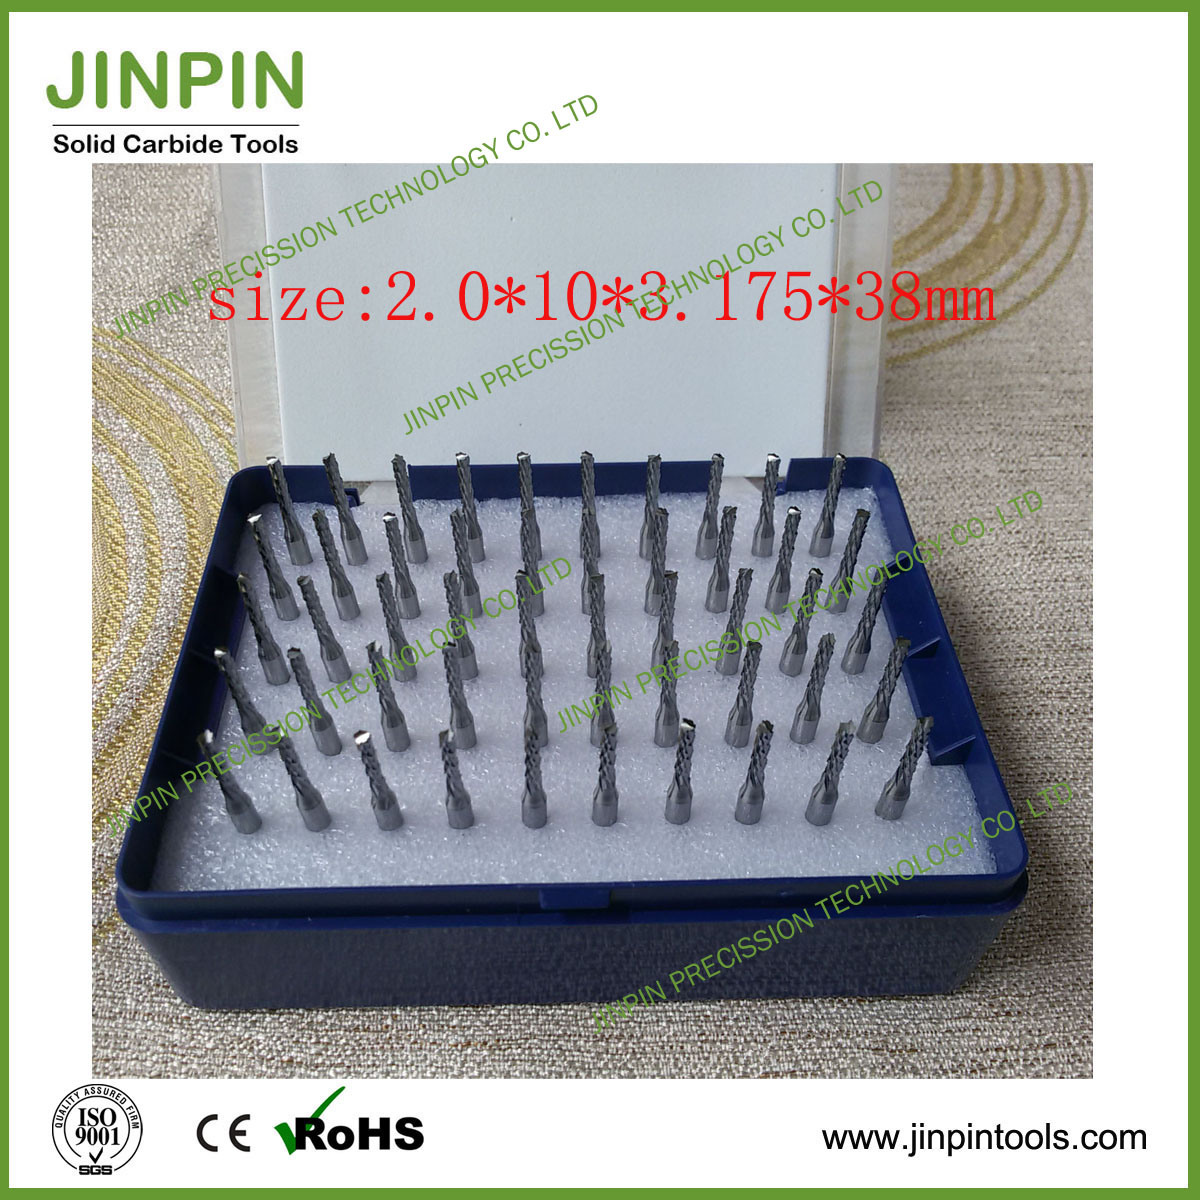 Size 2.0mm Solid Carbide Router Bits in Stock